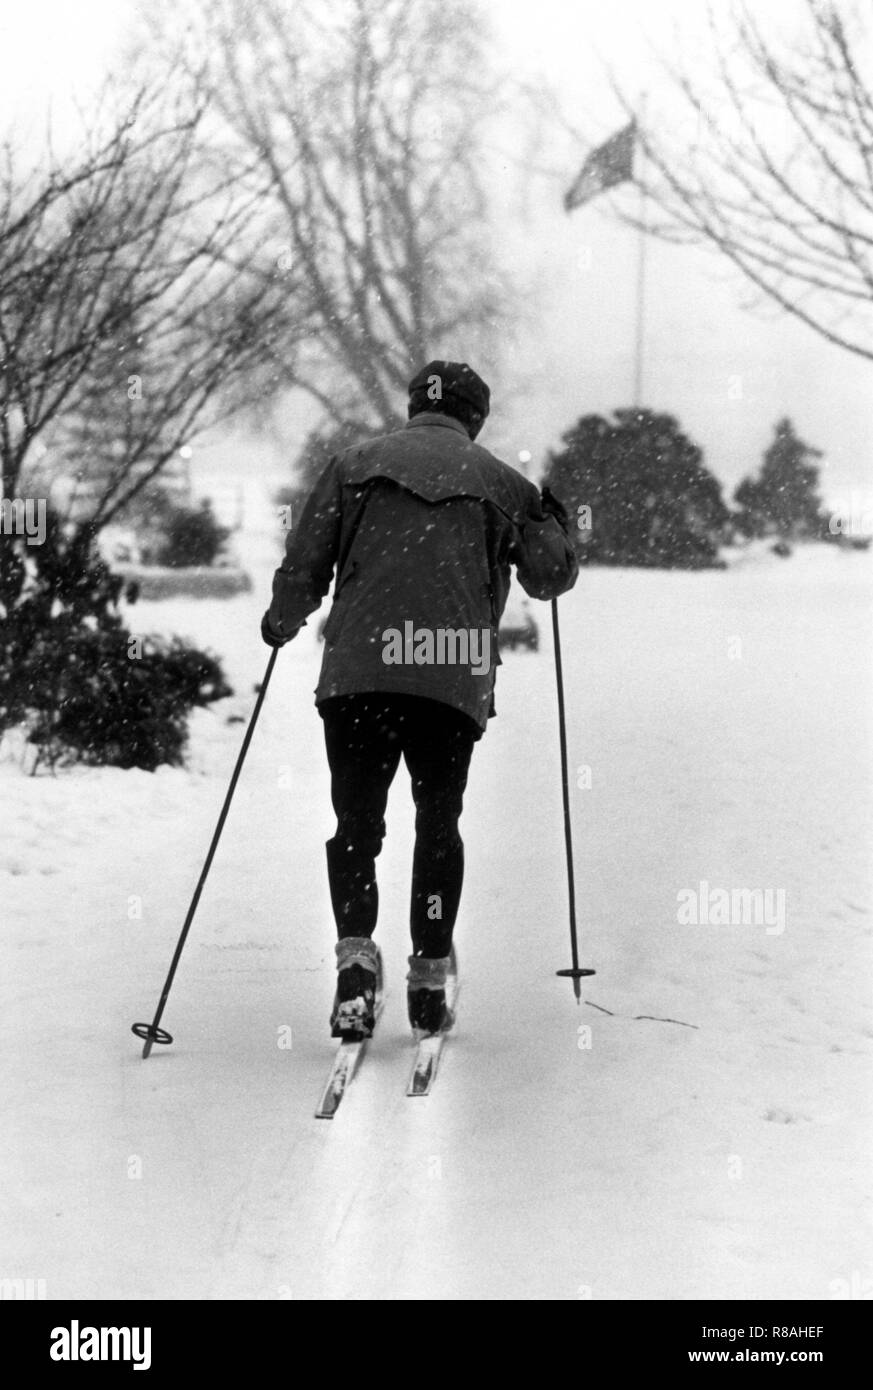 with cross-country skis is a sporty hamburger on January 24, 1979 on the snowy Alsterwiesen Hamburg. The drop in temperature on December 29, 1978, led to snow chaos in northern Germany, the north of the GDR, Denmark, and southern Sweden. Partly the traffic and the power supply collapsed, localities were cut off from the outside world. In the Federal Republic alone, 17 people were killed because of the snow chaos. | usage worldwide - Stock Image